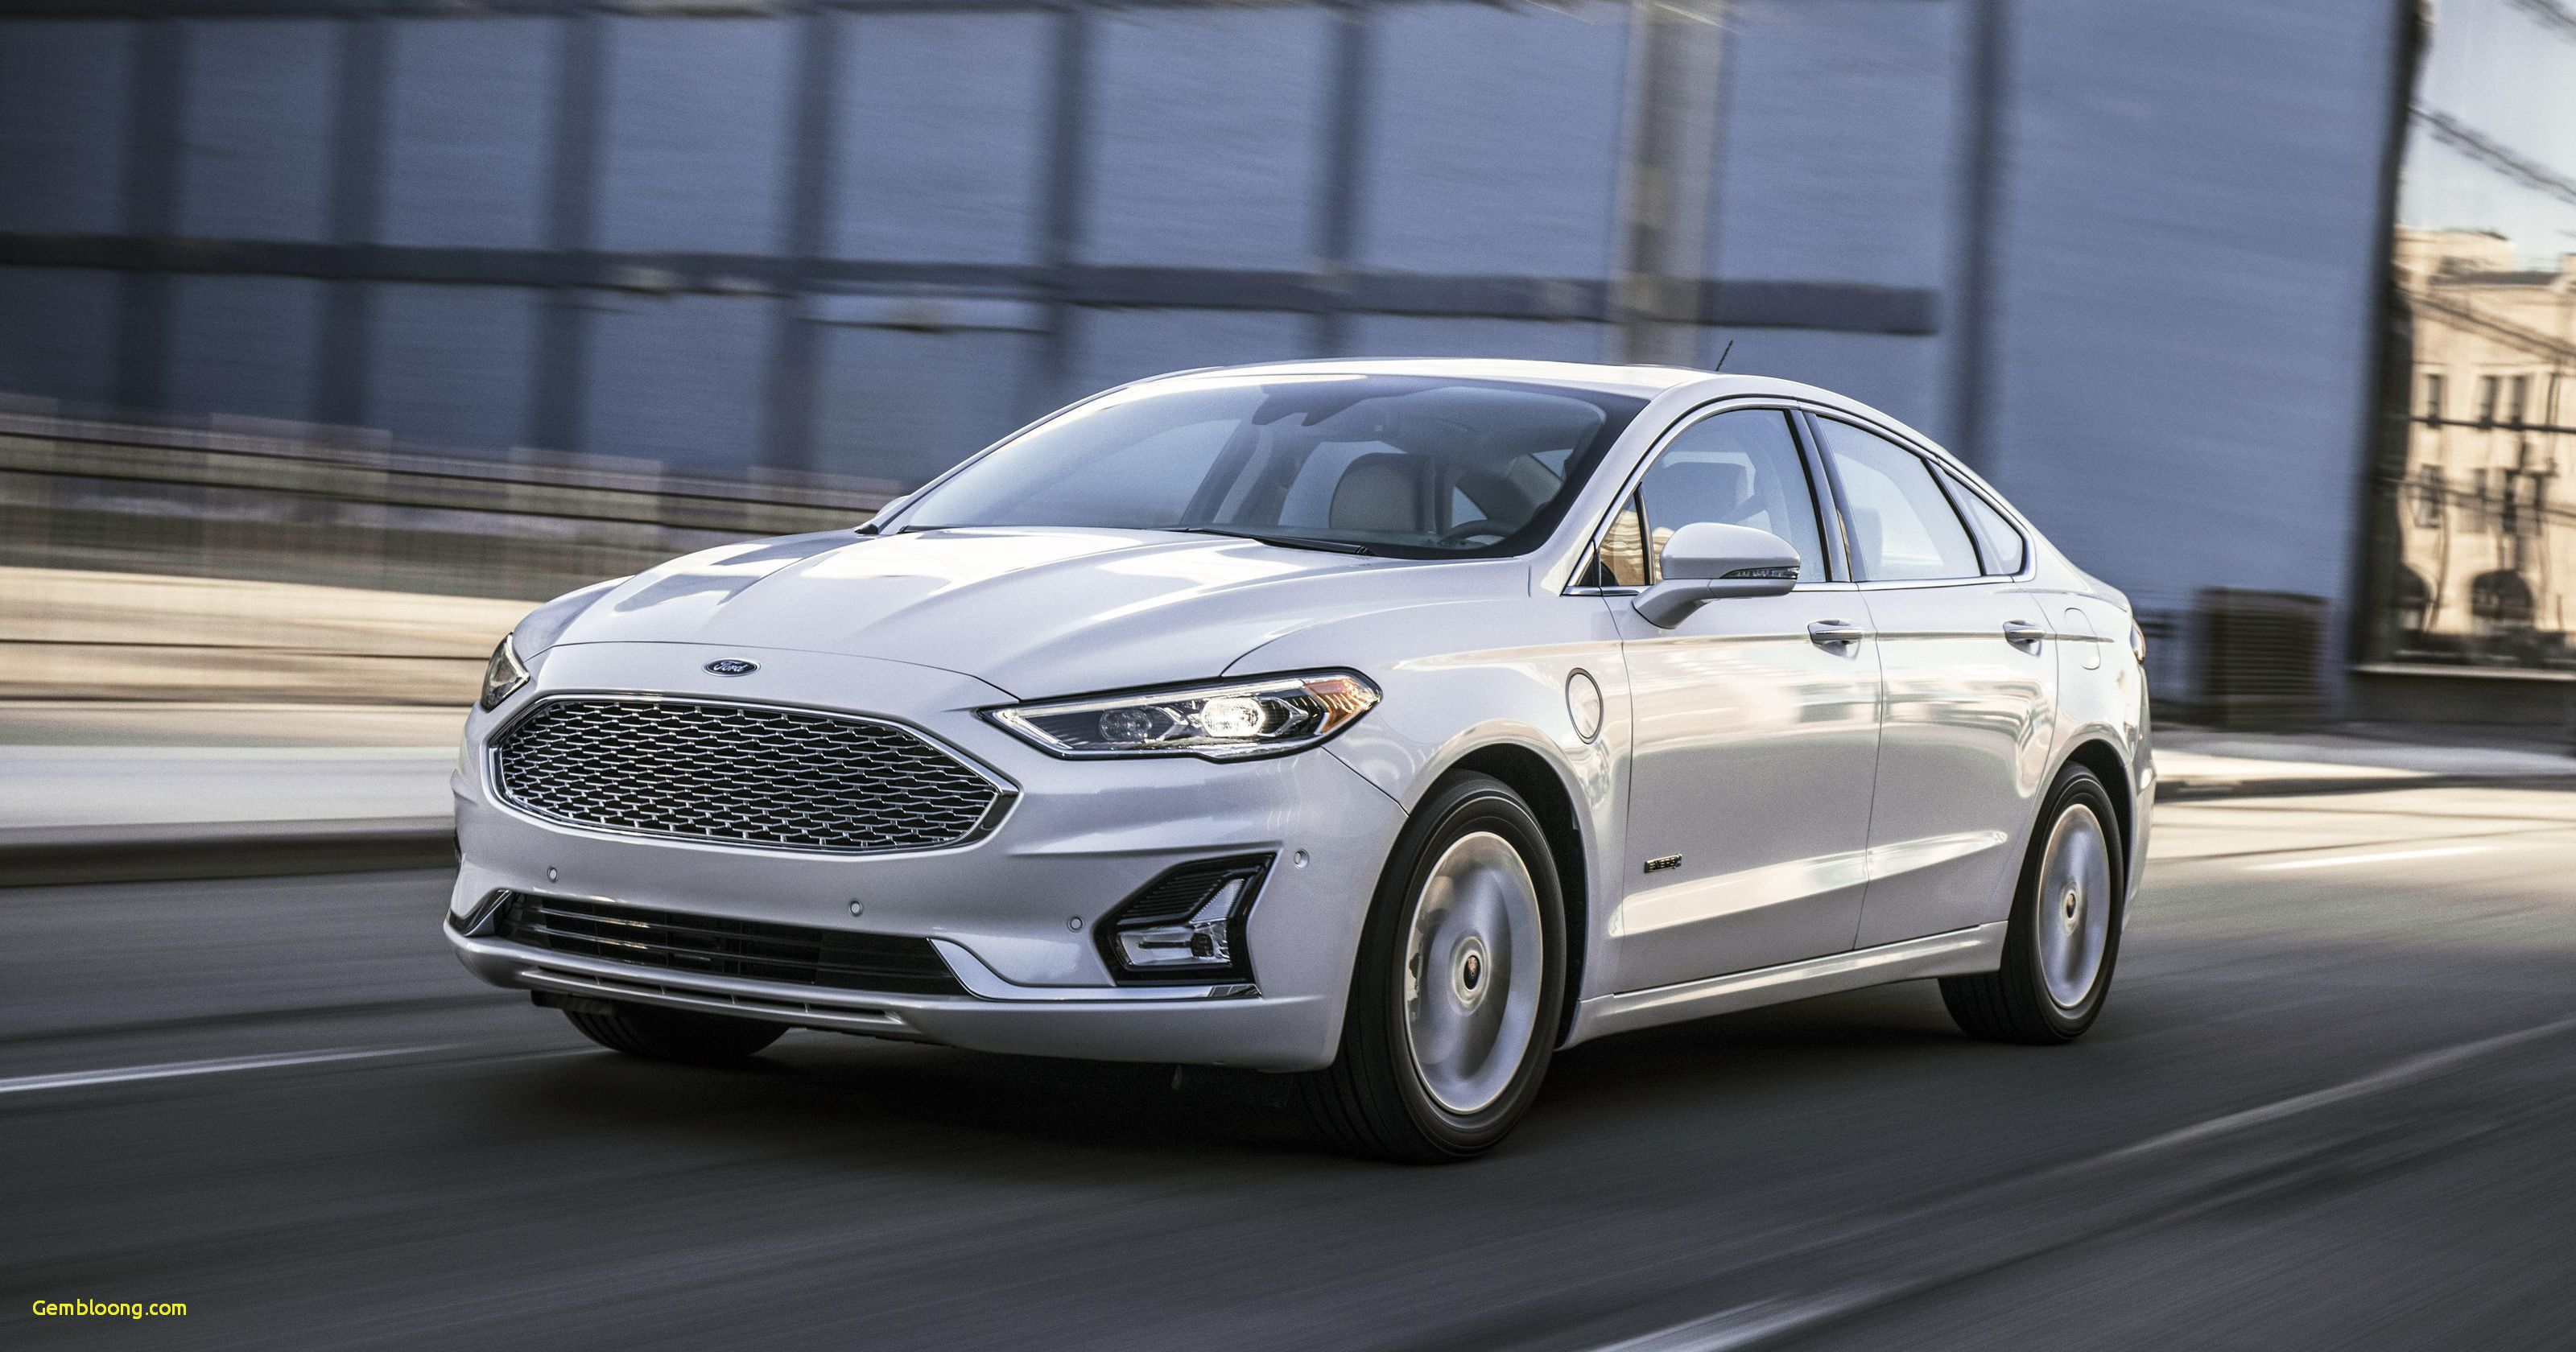 2019 Ford Fusion Hot 2010 Ford Fusion Serpentine Belt Diagram Ford Fusion 2019 Ford Safest Suv